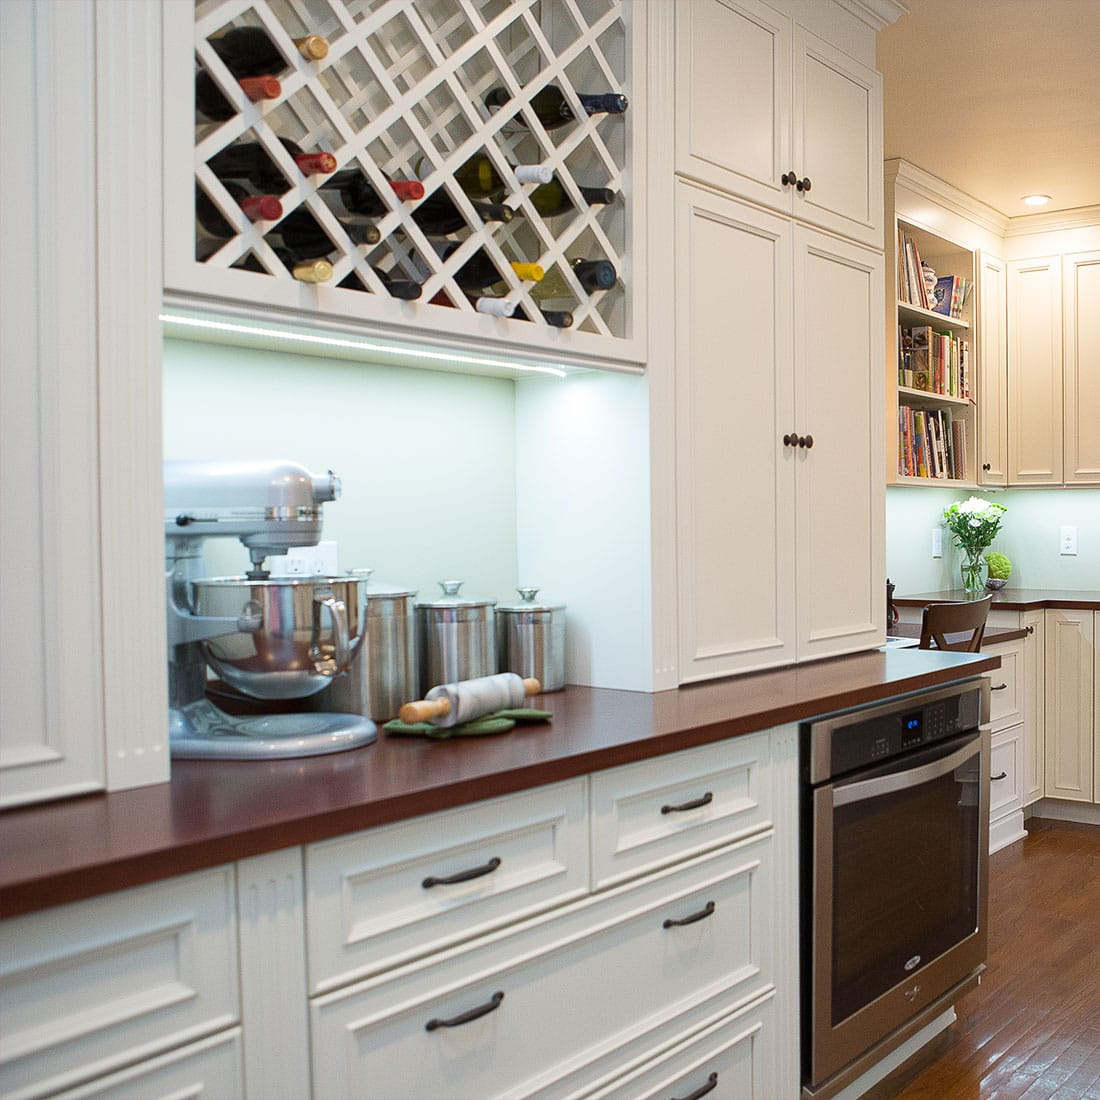 Built in storage nook with wine rack in renovated kitchen